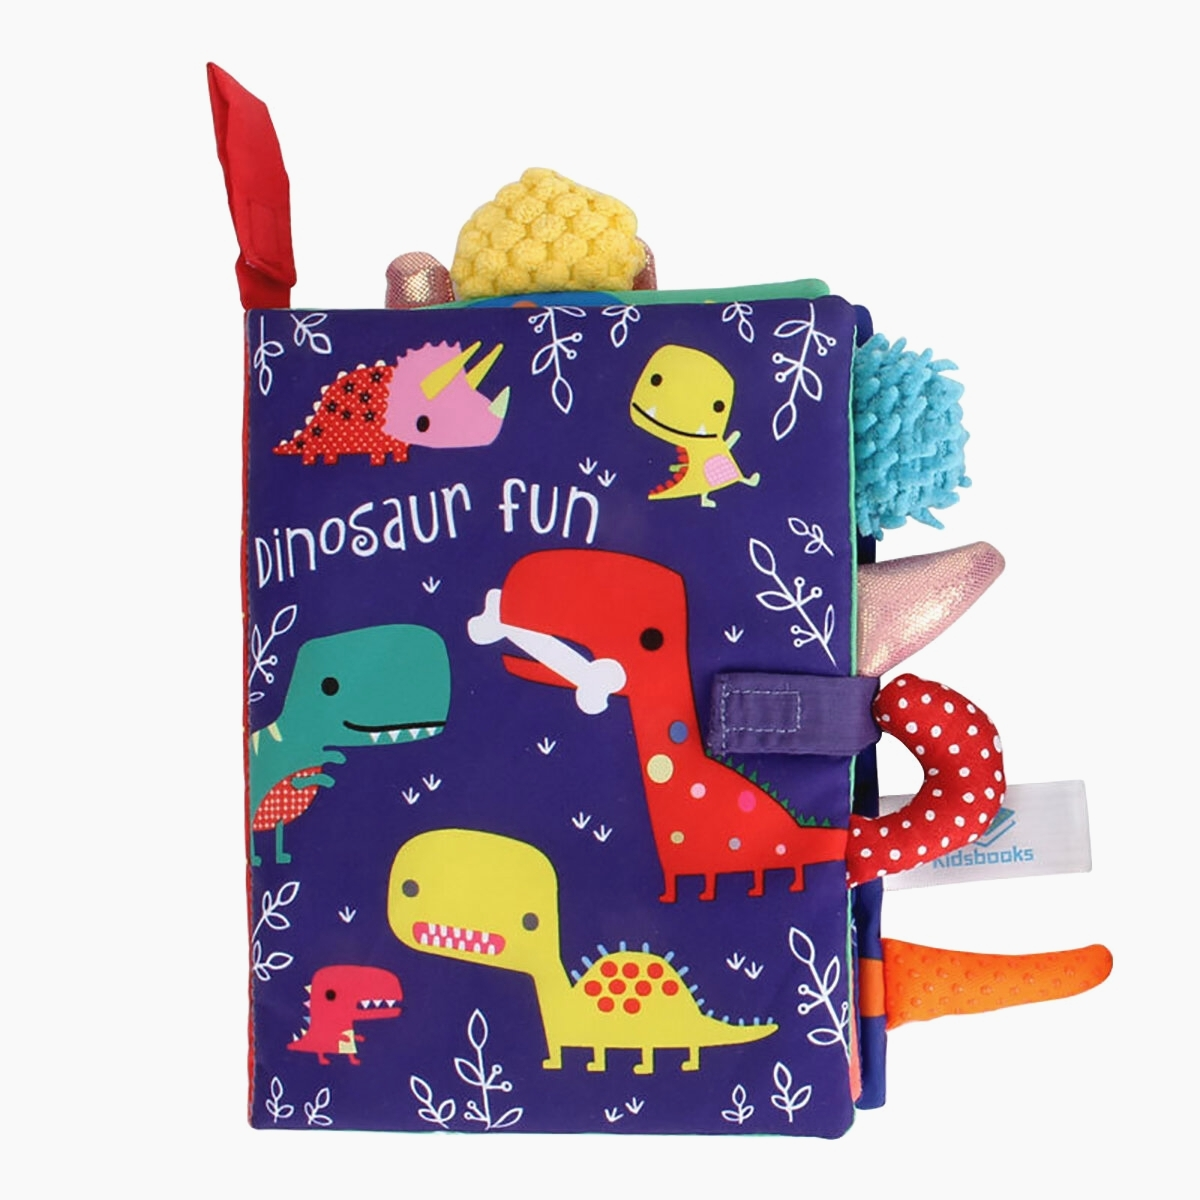 Download HOT SALE up to 30% Multifunctional Tail Cloth Book Educational Toy Book Tear proof Inner   #QpiX0